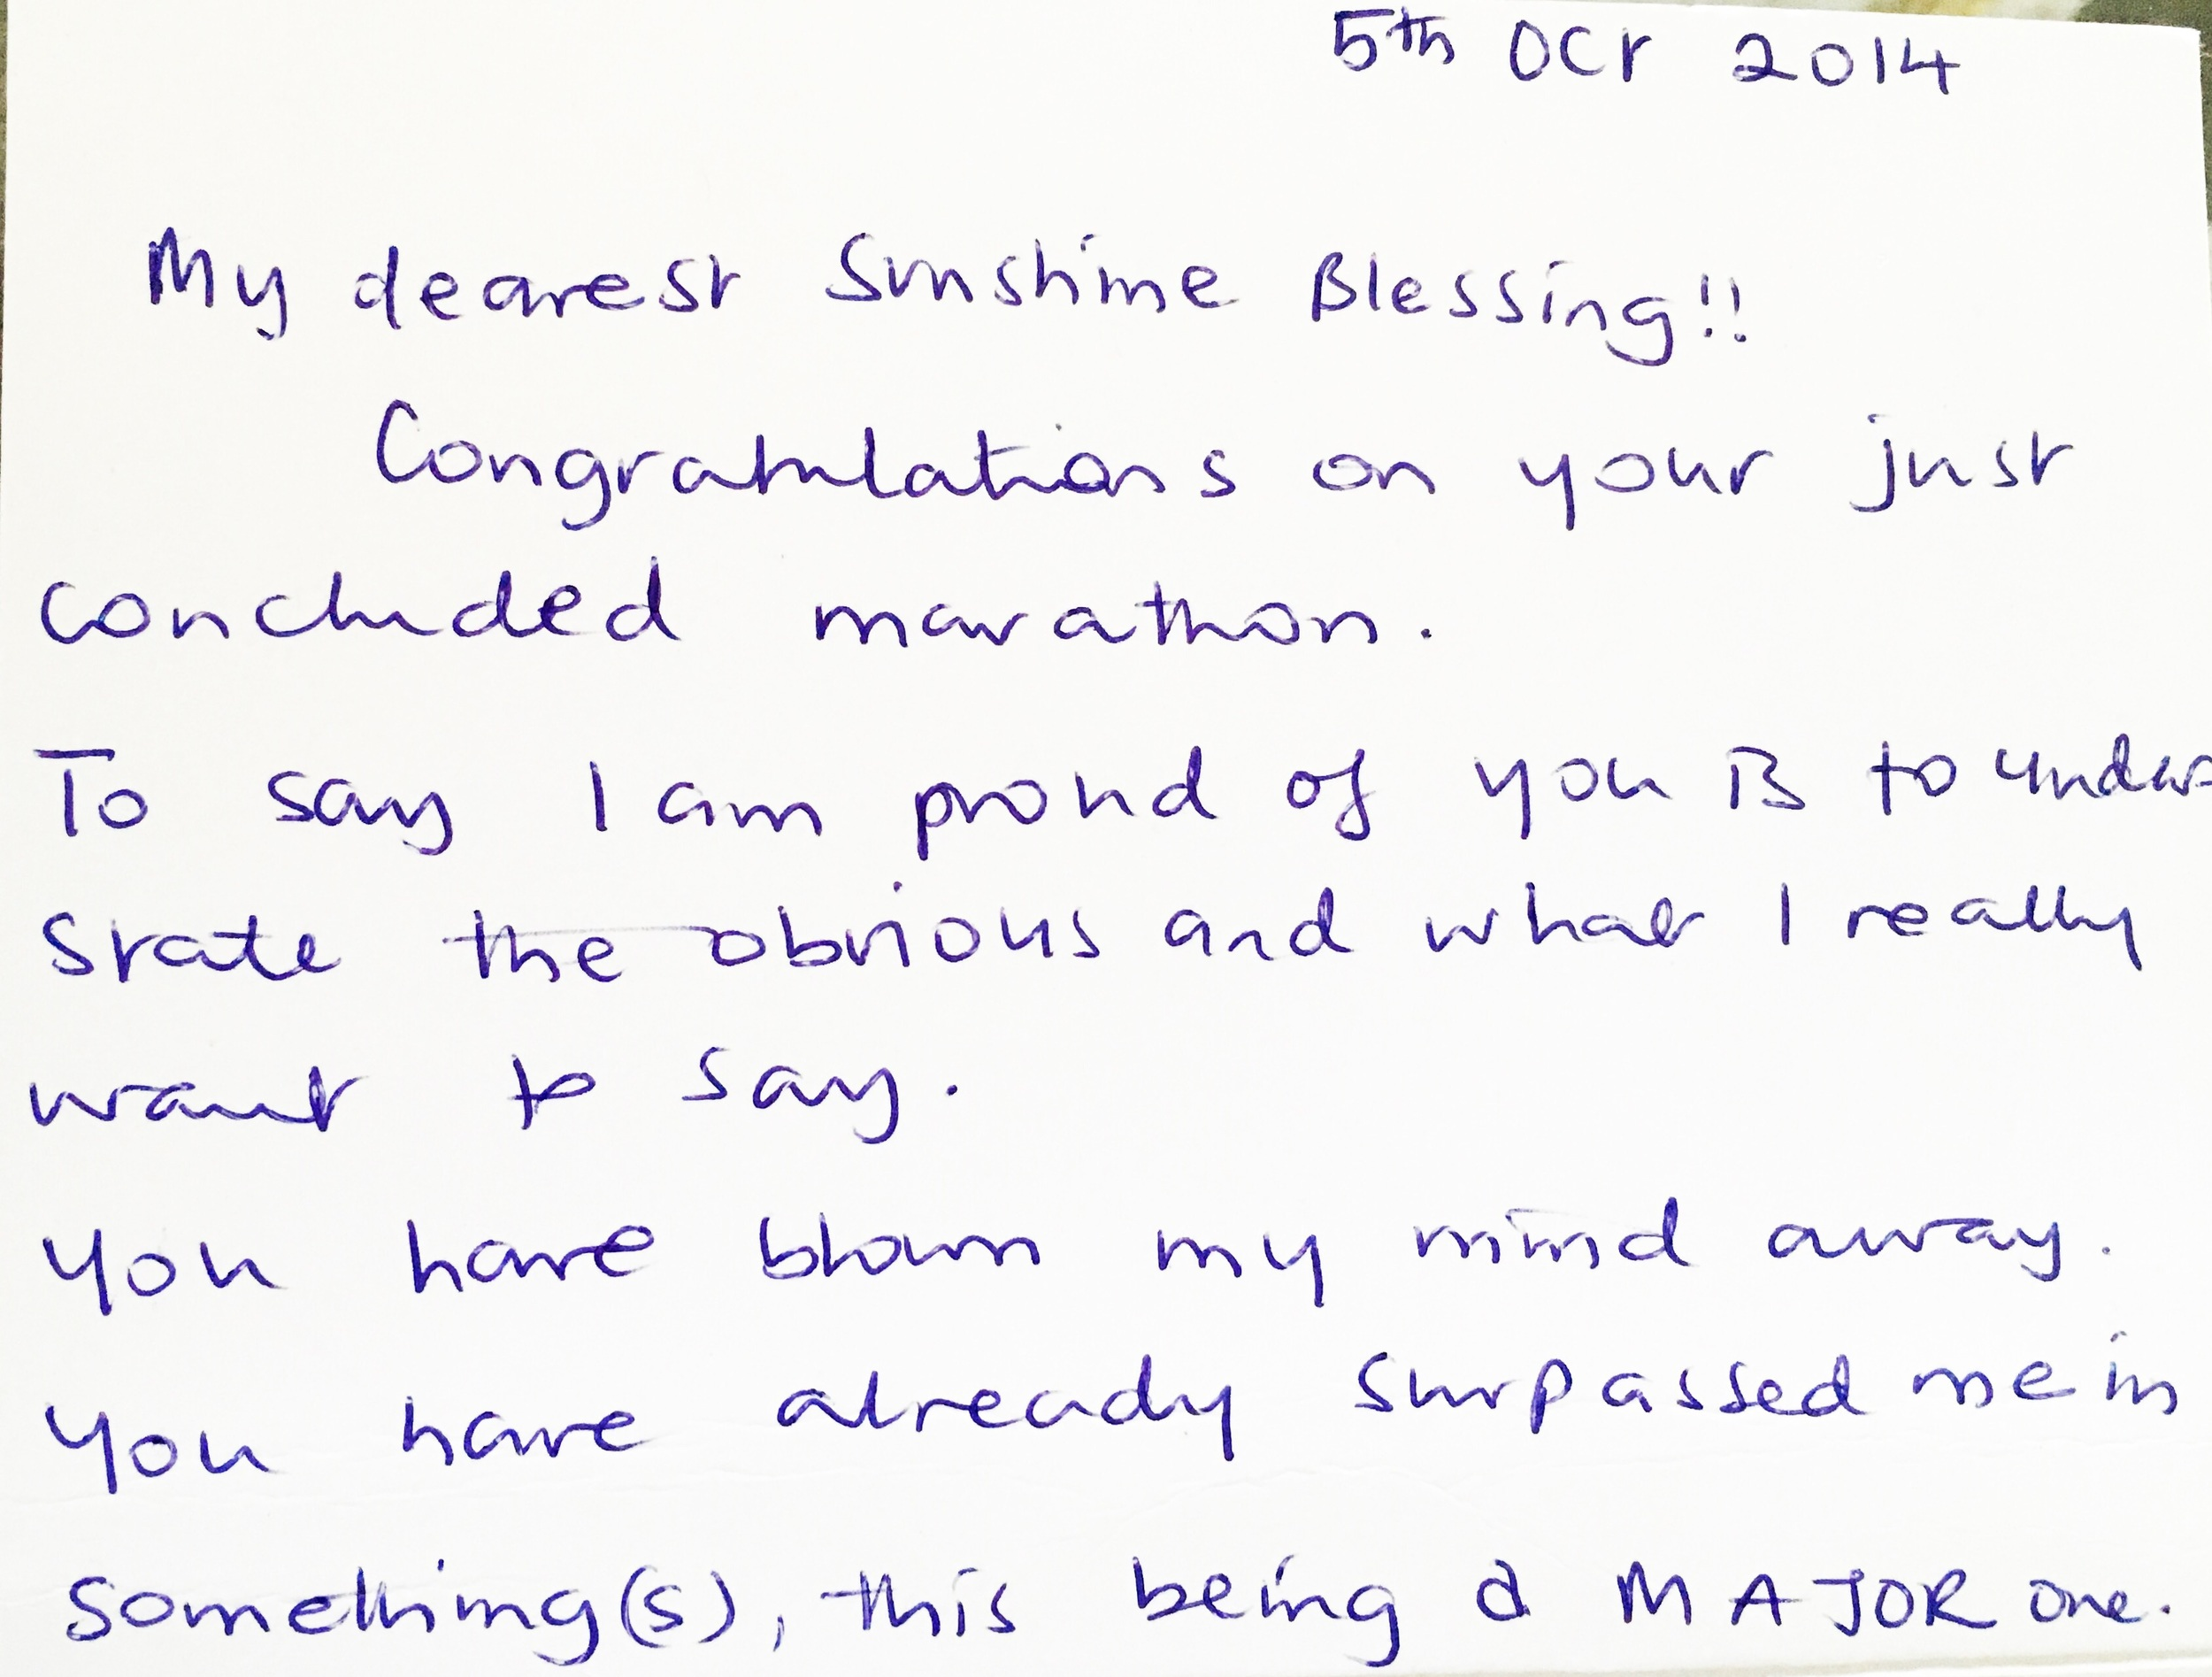 A letter my mother sent me with a beautiful gift the day of my marathon. I will cherish it forever!